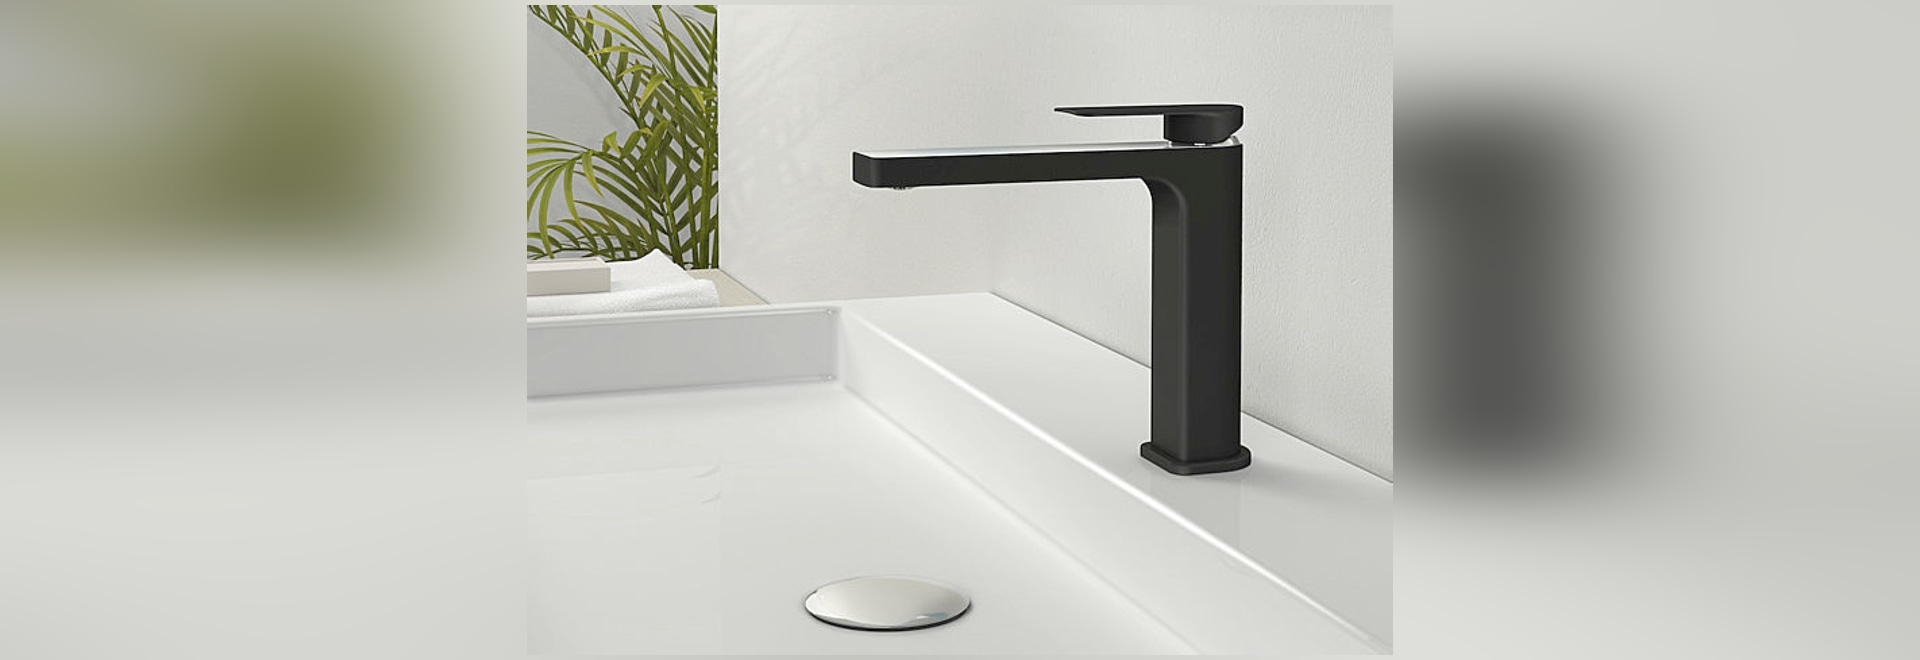 OPHIR WOWS THE RED DOT PRODUCT DESIGN AWARDS